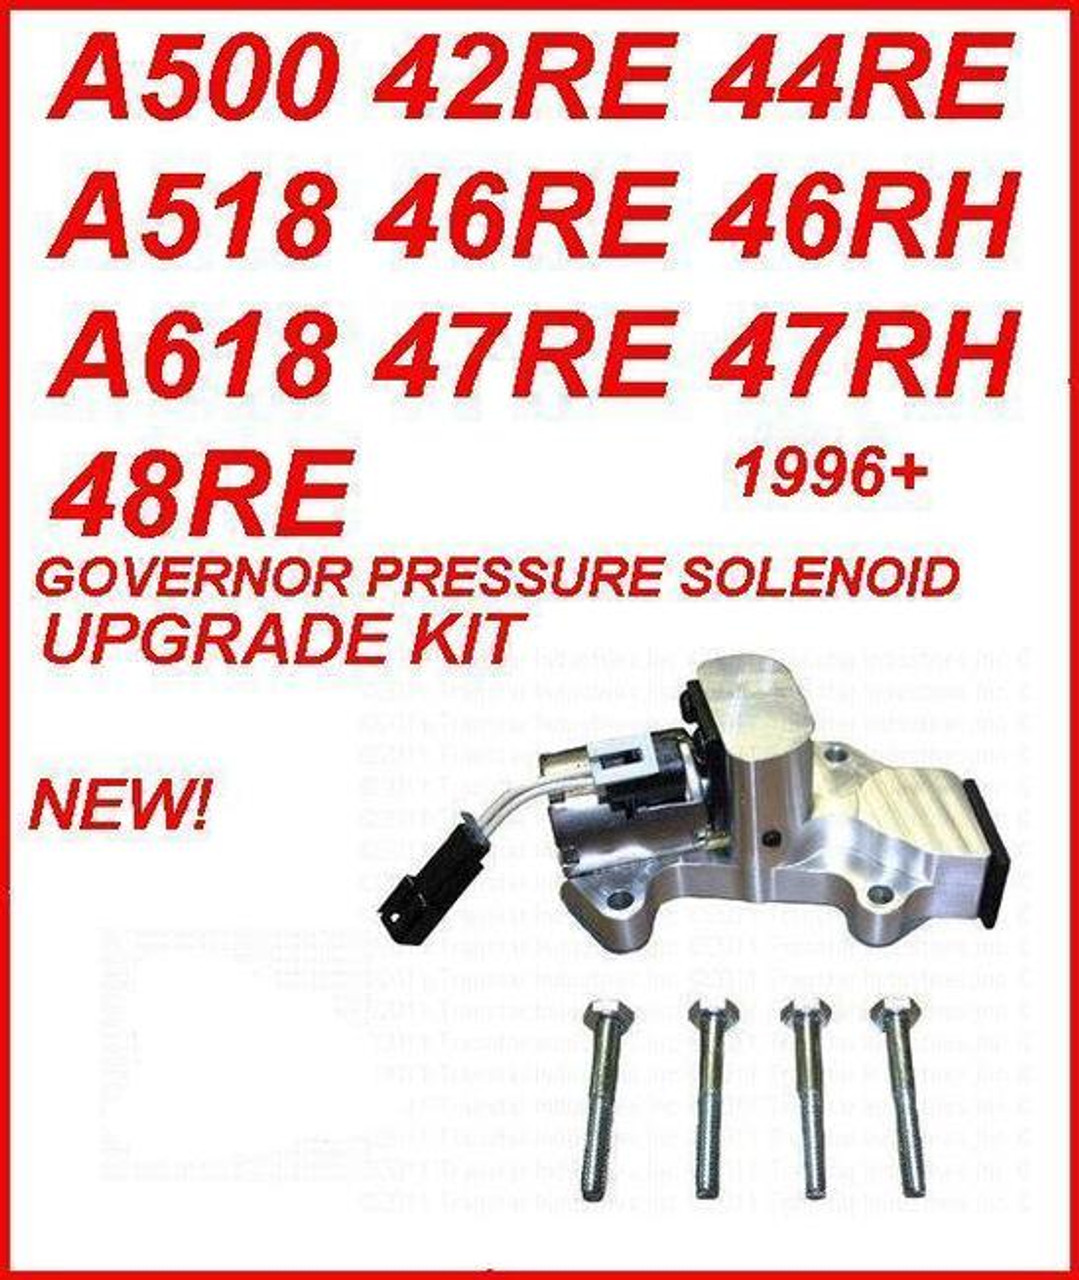 A500 A518 A618 47RH 47RE 48RE TRANSMISSION GOVERNOR PRESSURE SOLENOID  UPGRADE KIT FITS '96+